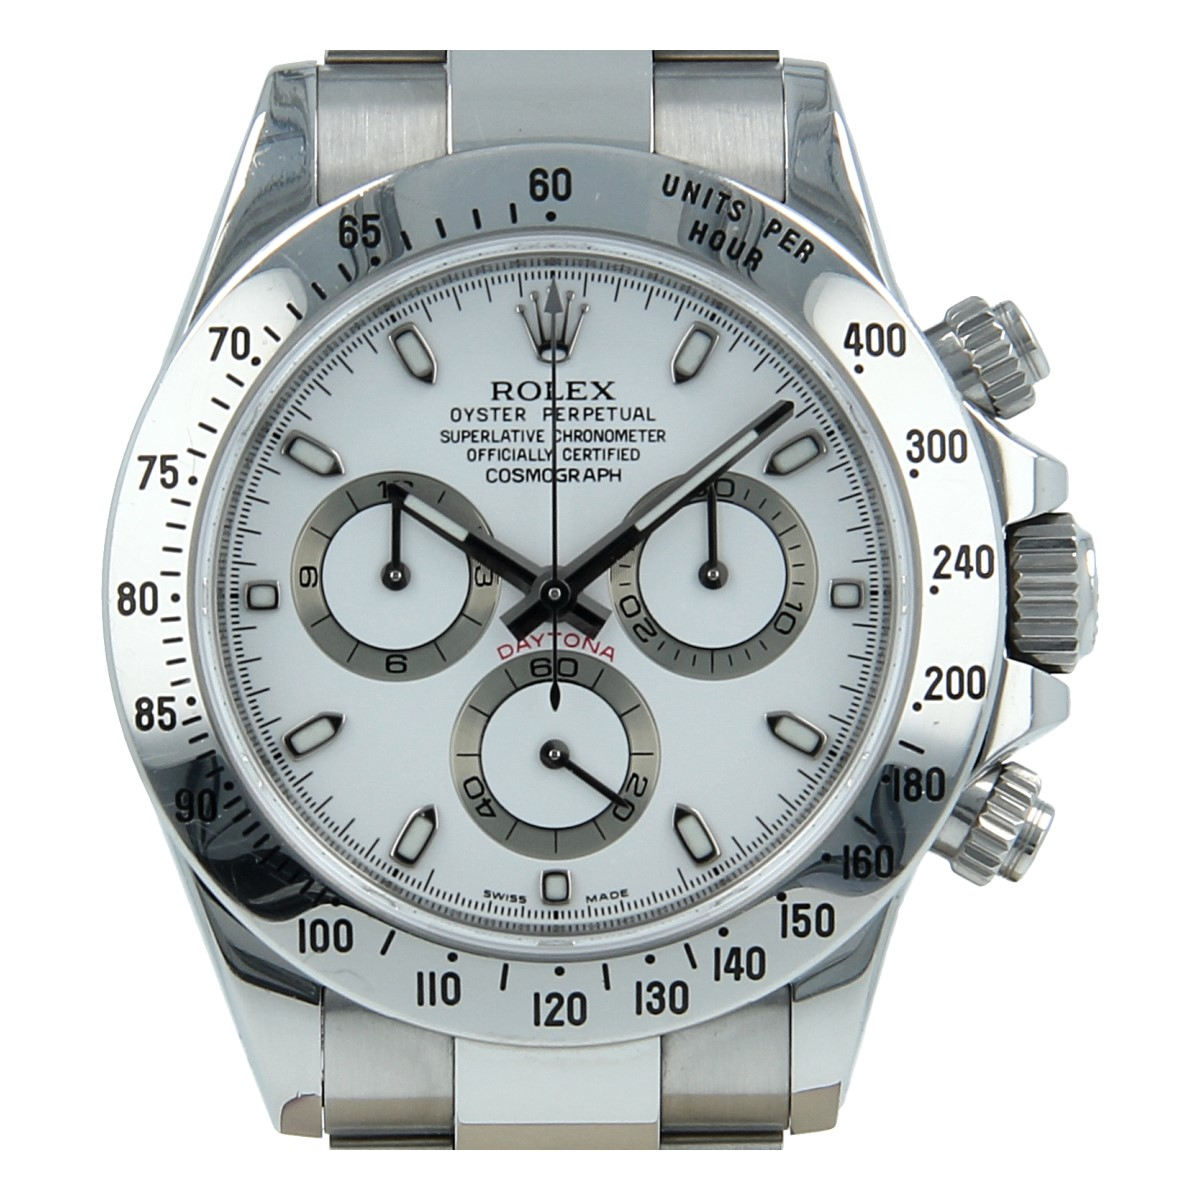 Second Hand Watches >> Rolex Daytona 116520 White Dial Full Set